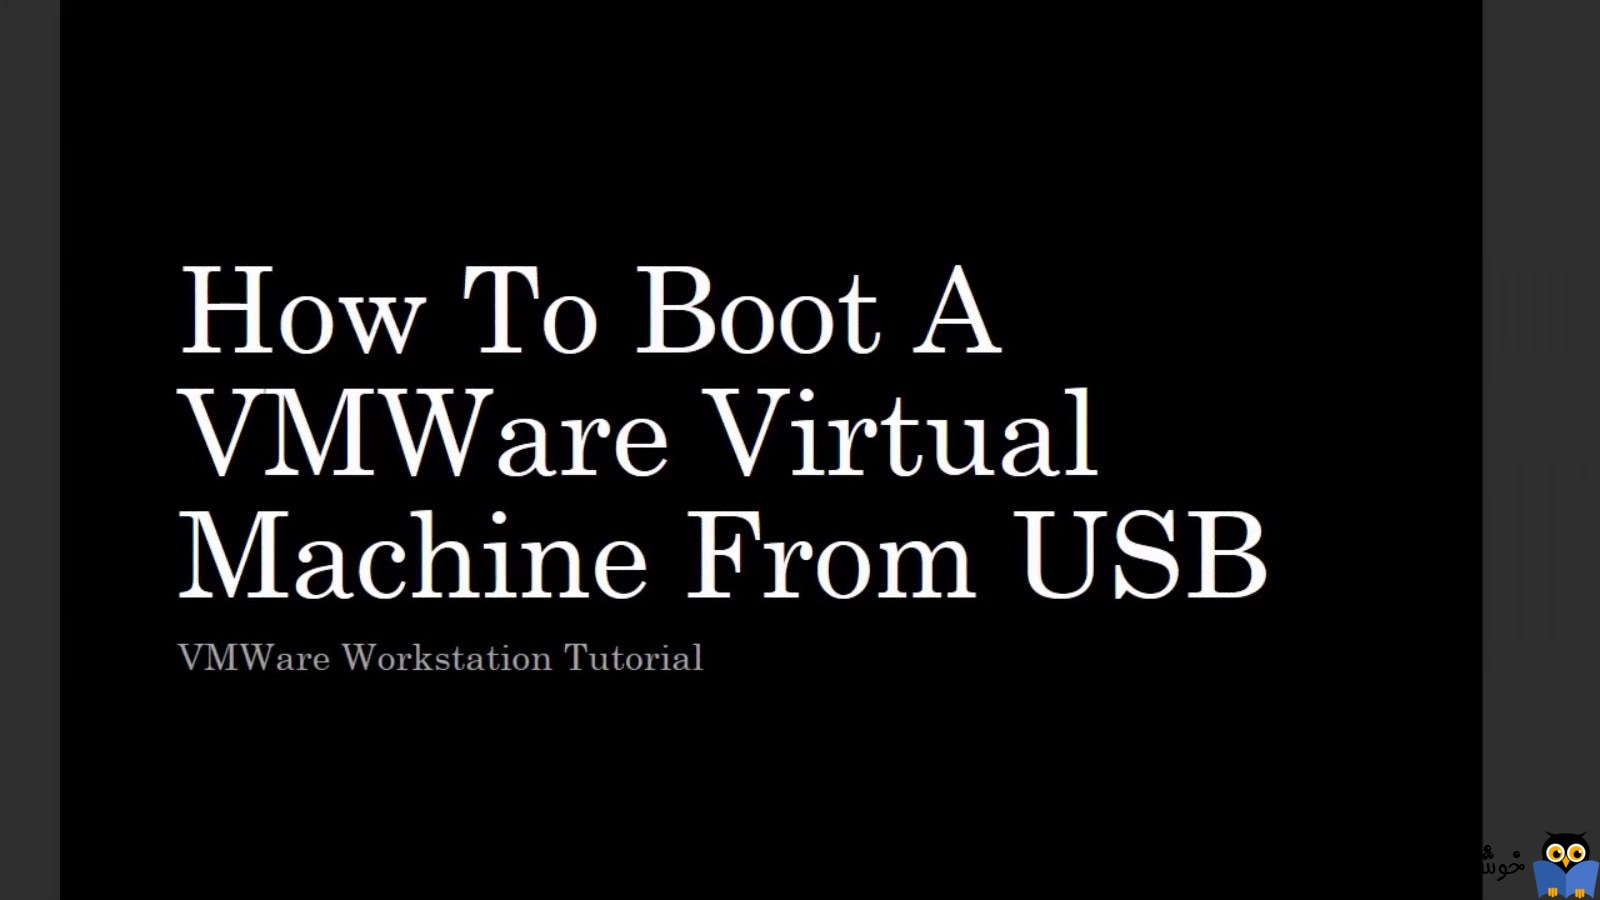 USB Boot یک VM در VMware Workstation